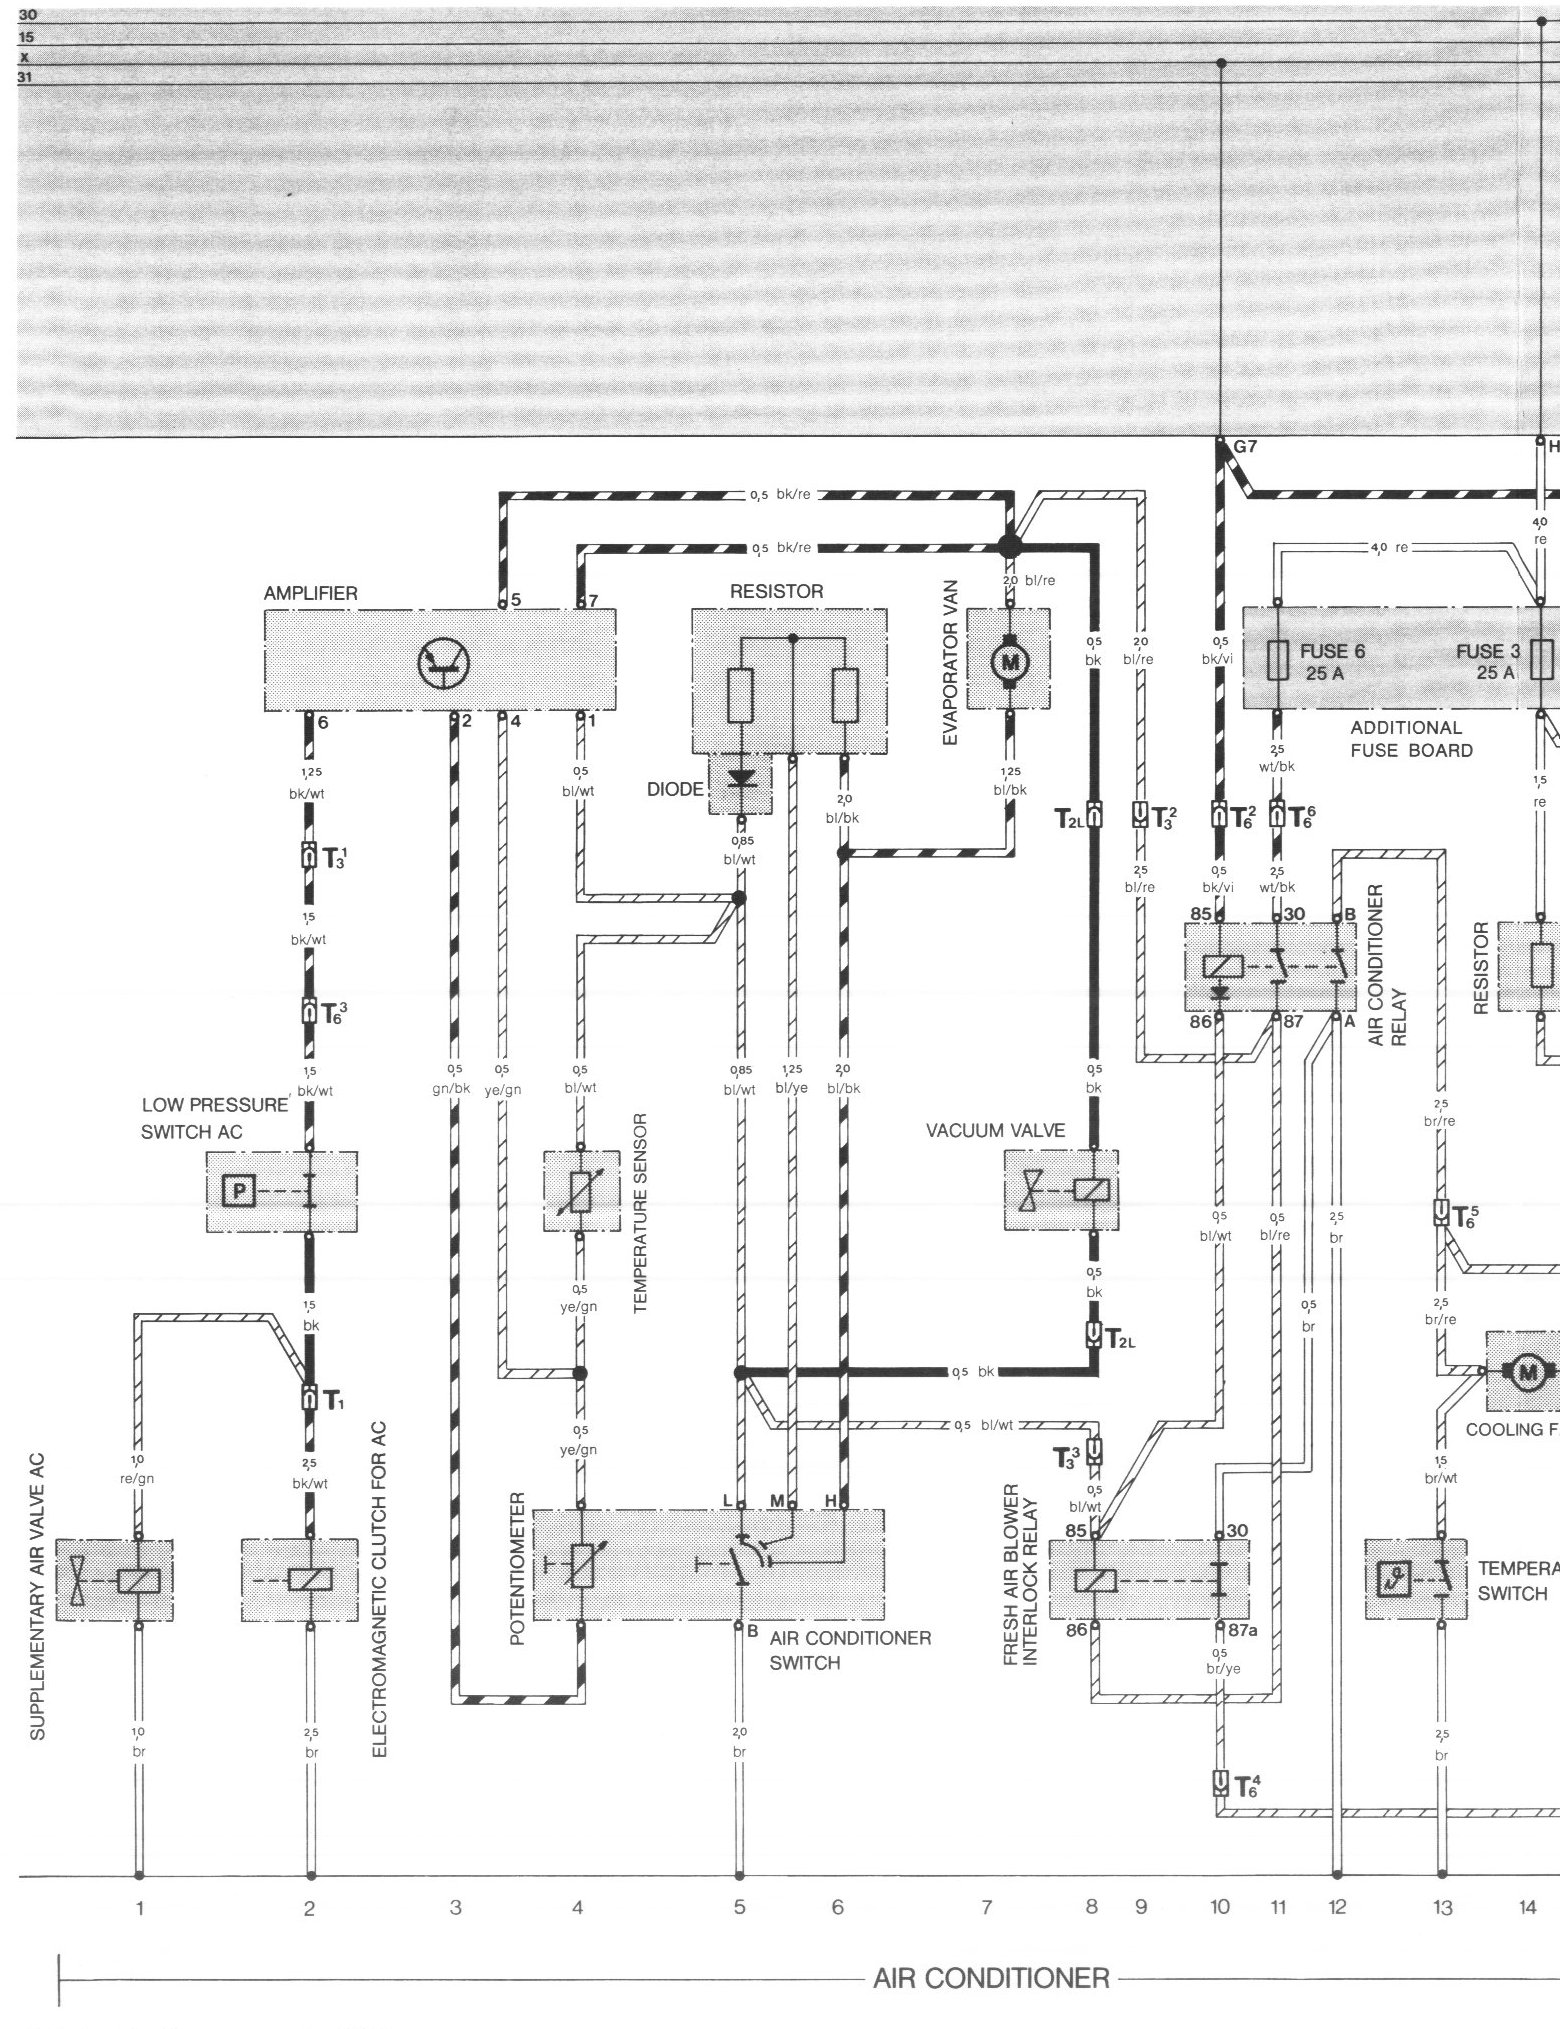 pelican parts porsche 924 944 electrical diagrams porsche cayenne wiring diagrams a c page 1,